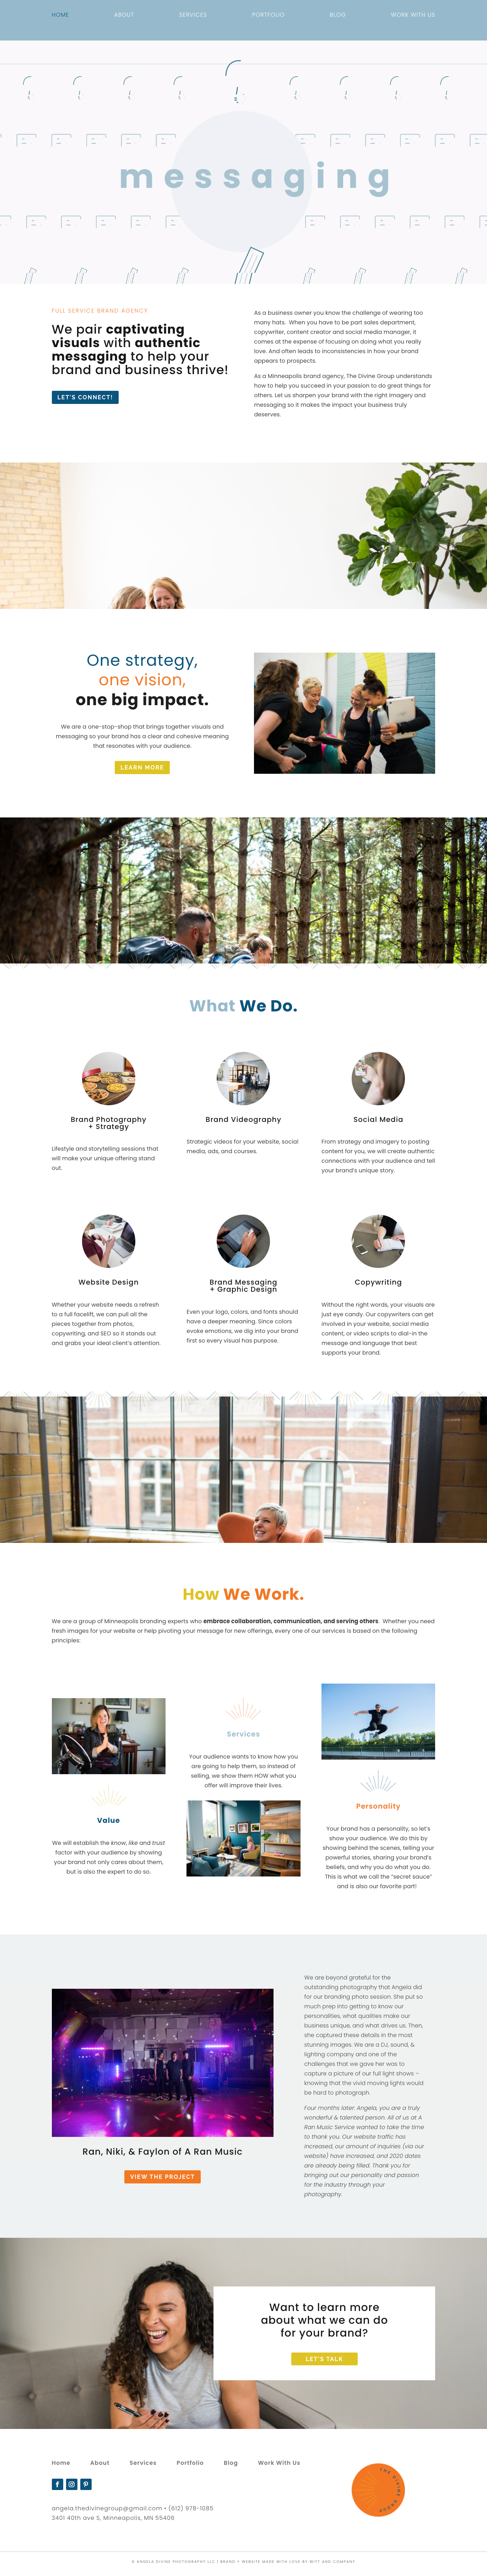 Branding Agency Home Page Layout and Design